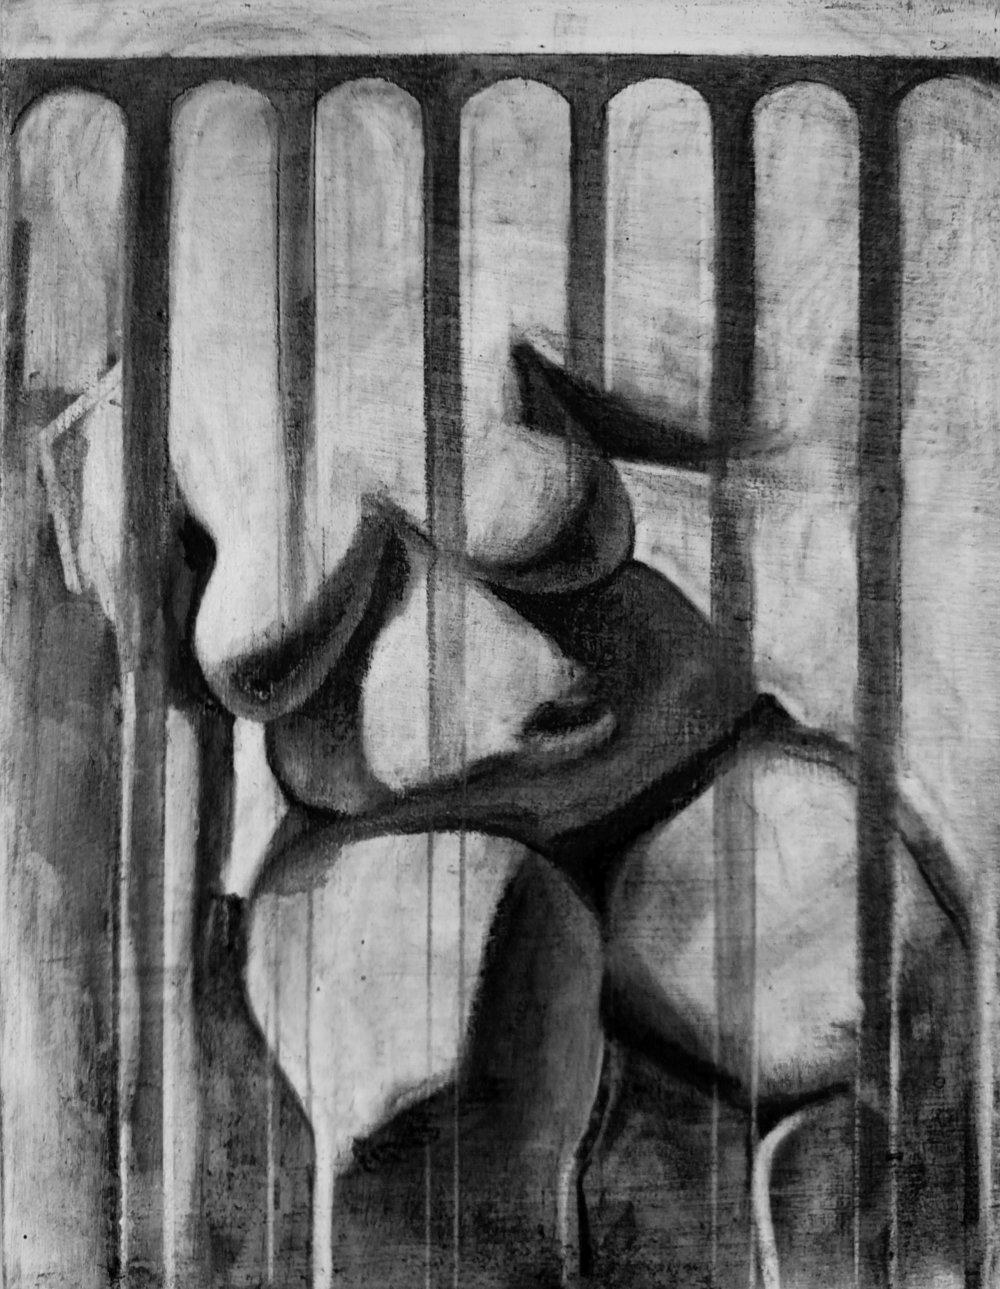 Nude Study 3    Charcoal on Gessoed Wood Panel  2016 7in x 9in